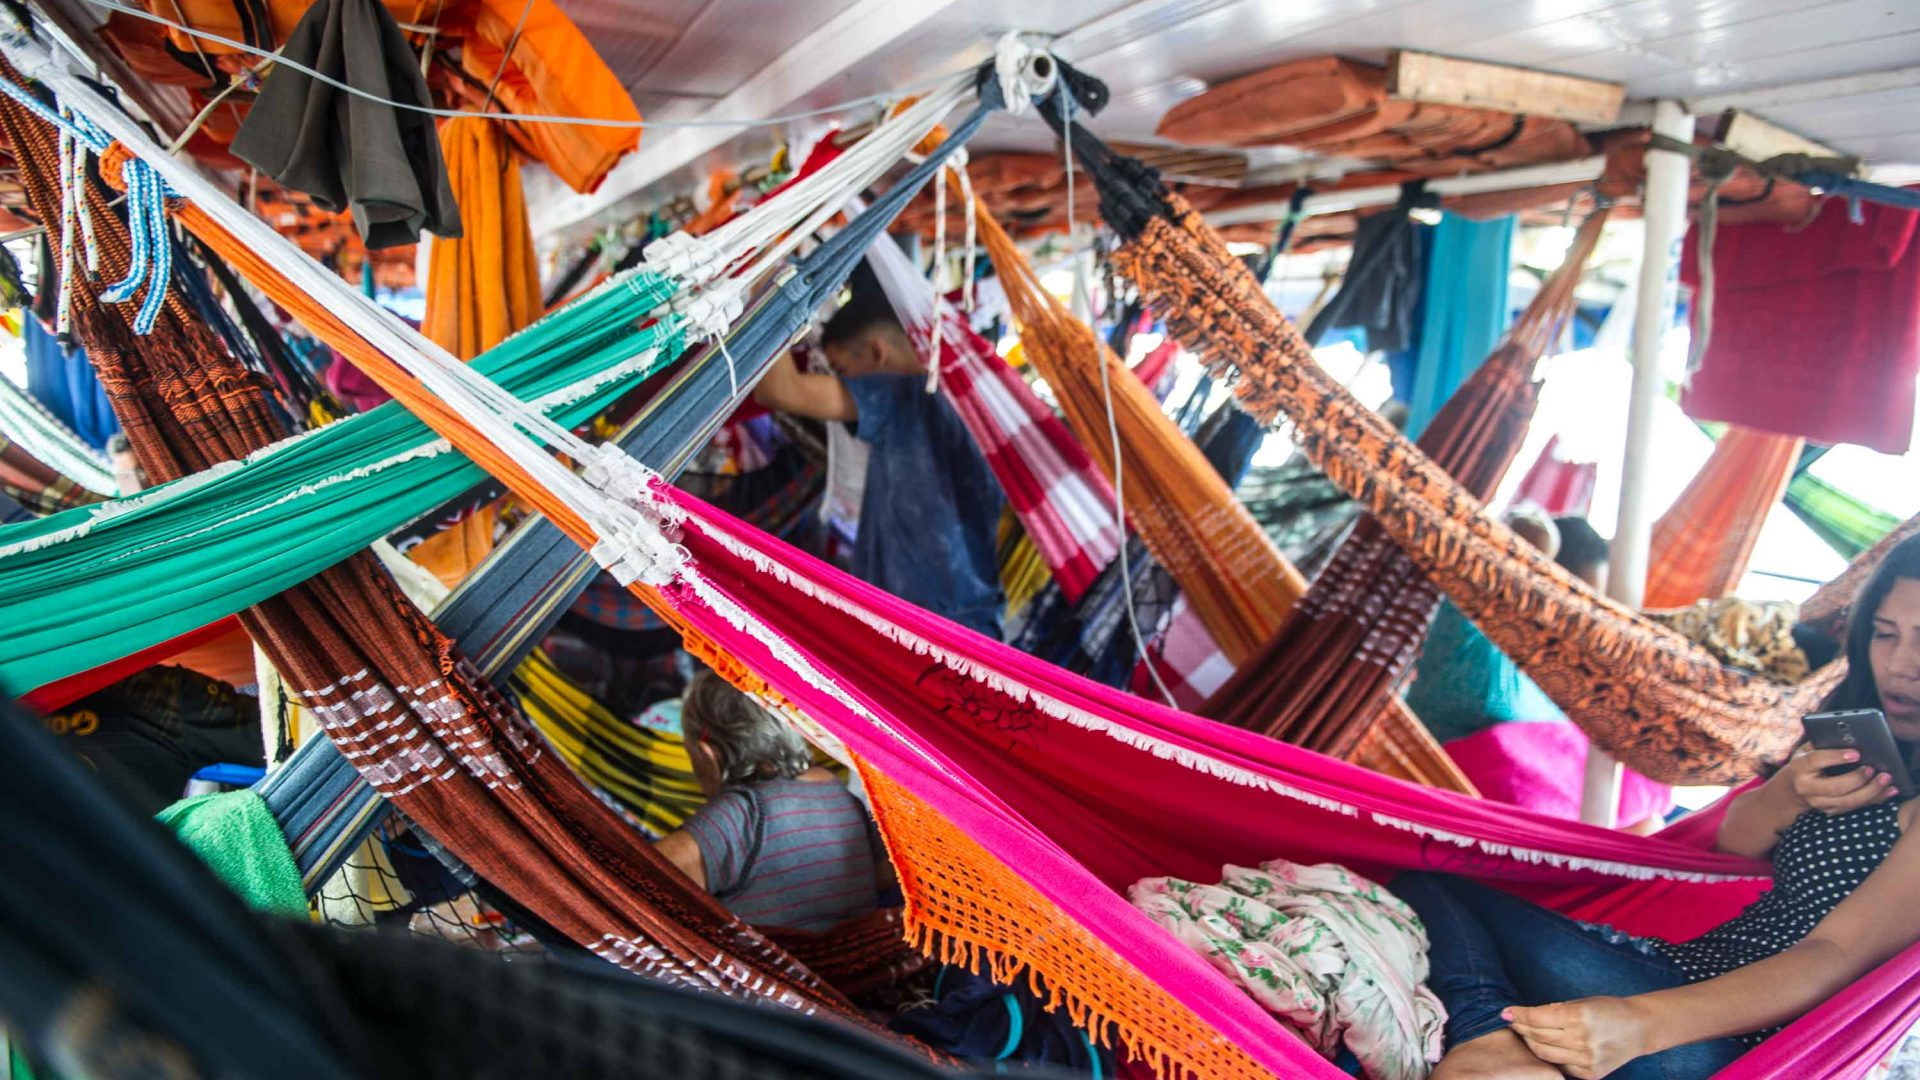 Cisne Branco riverboat hammocks lie side by side, often bumping each other during the voyage.